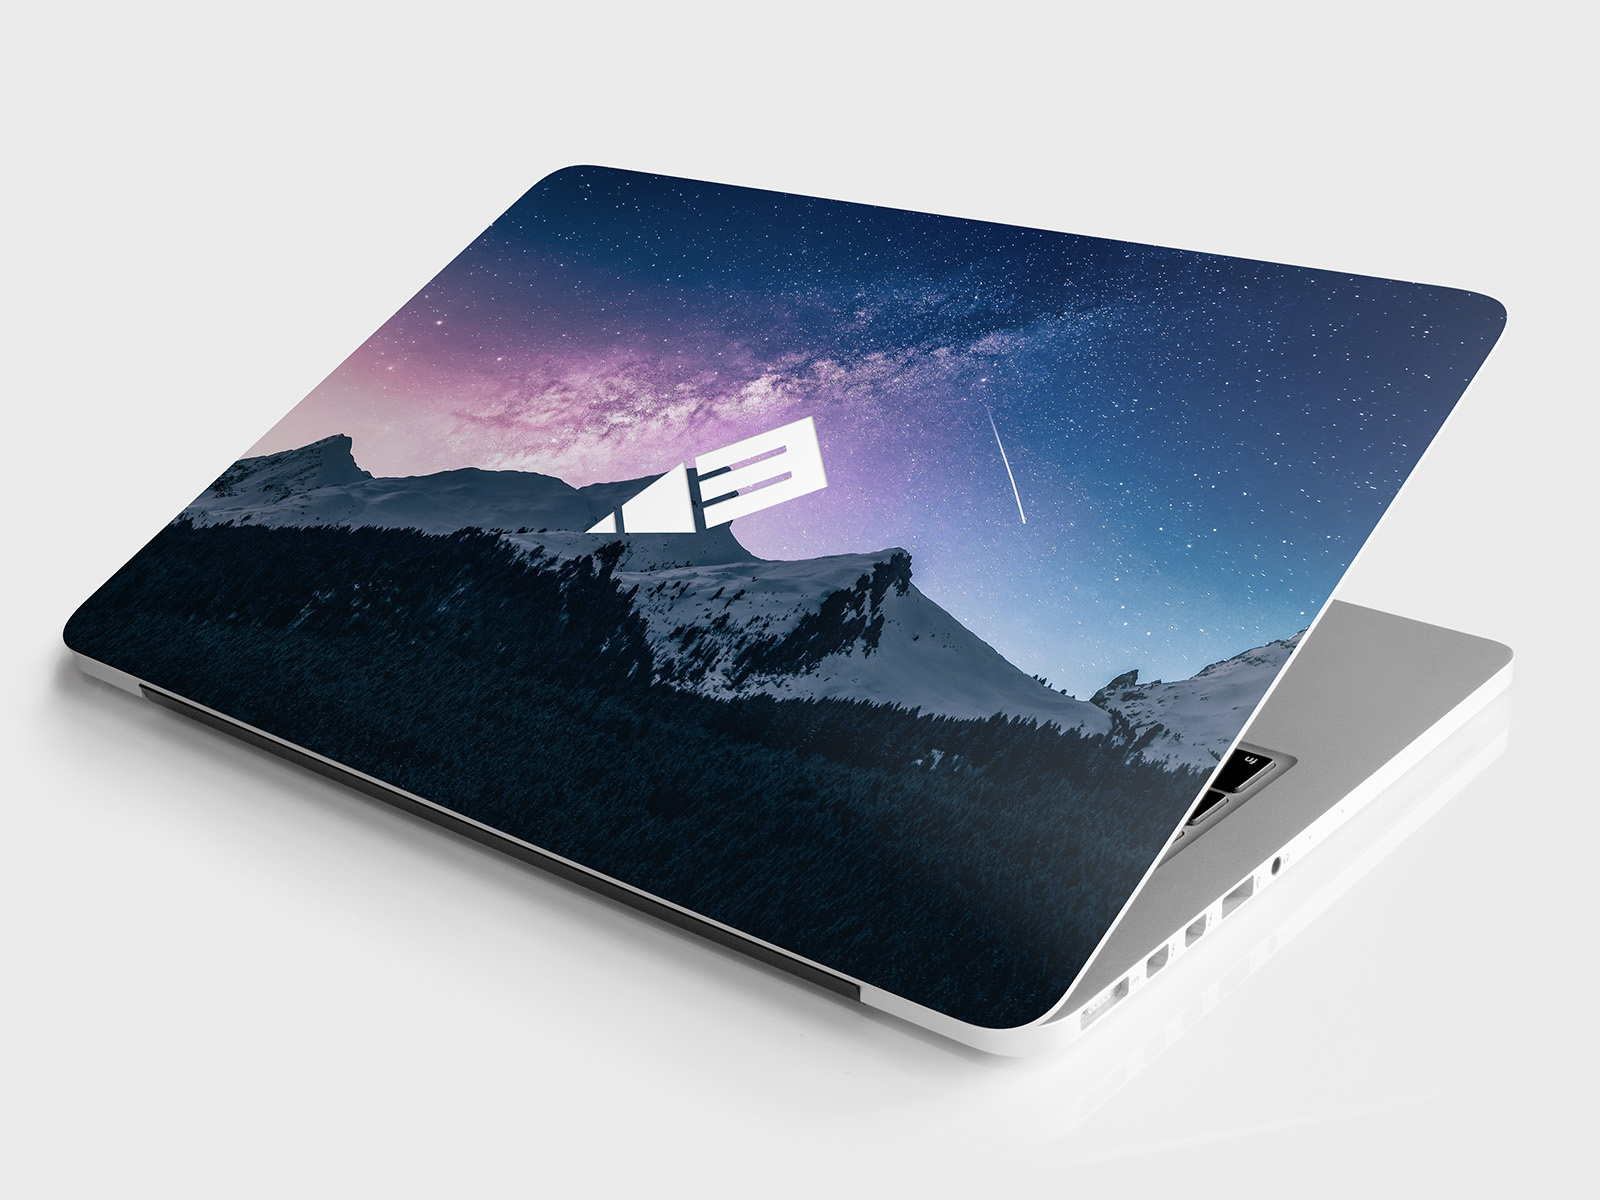 Laptop Sticker  U0026 Skin Mockup  Free Psd  By Tony Thomas For